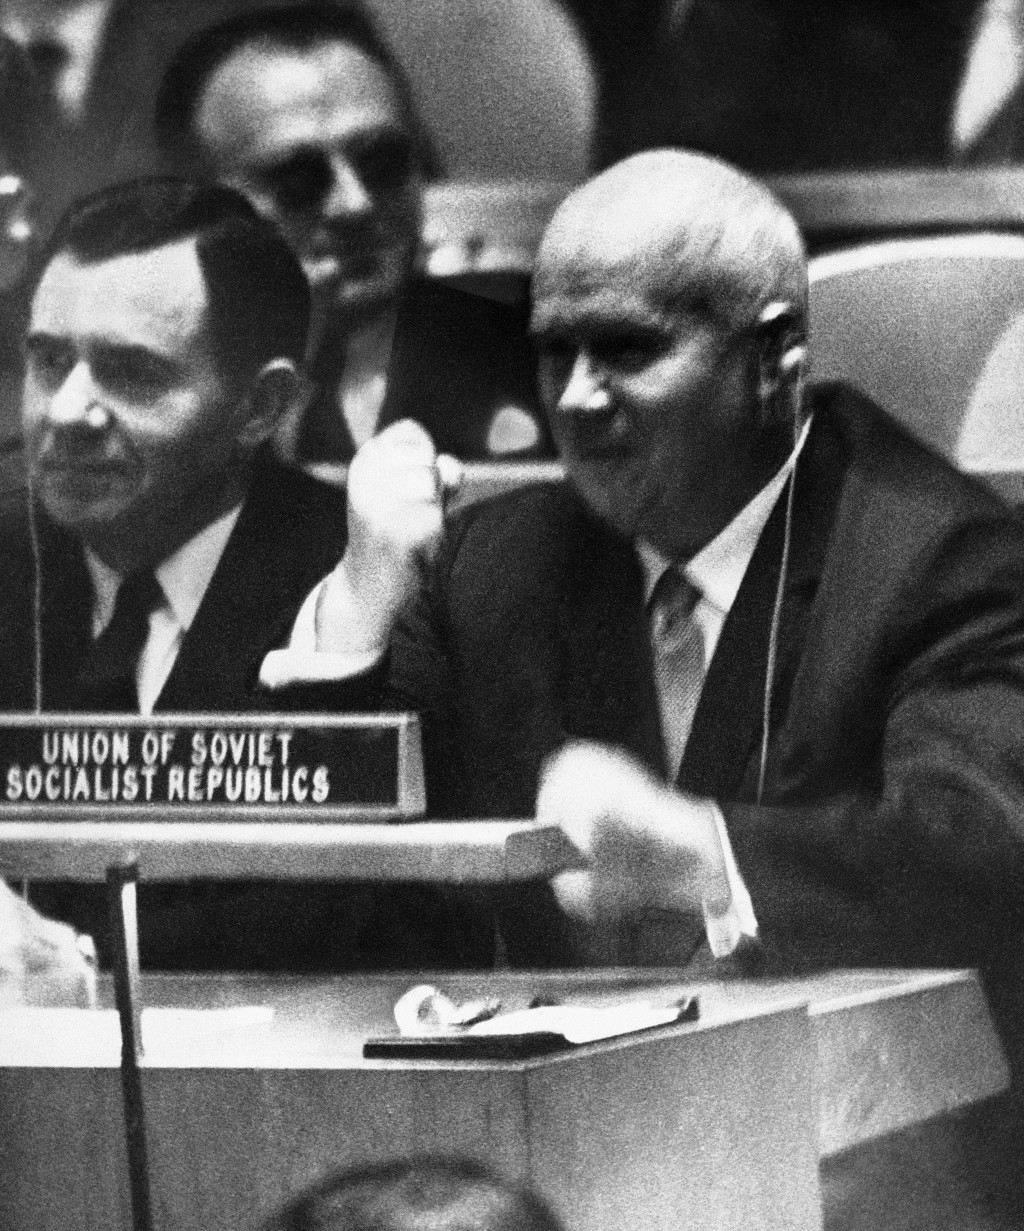 FILE - In this Oct. 12, 1960 file photo, Soviet Premier Nikita Khrushchev pounds his desk at the United Nations with his fist during a General Assembl